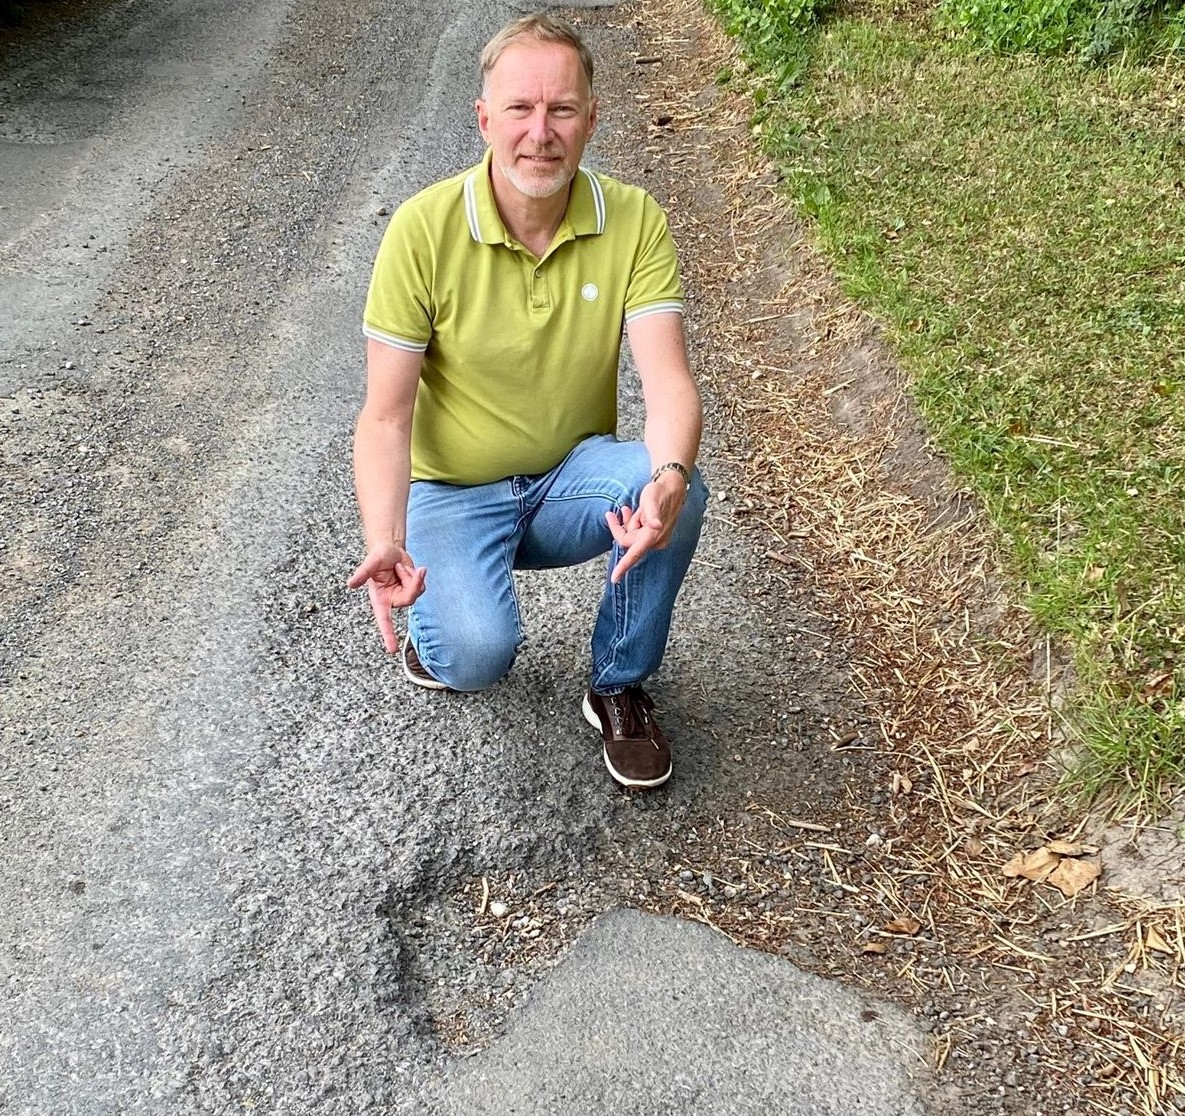 EXPOSED: COUNCIL'S FAILURE TO FIX ROADS